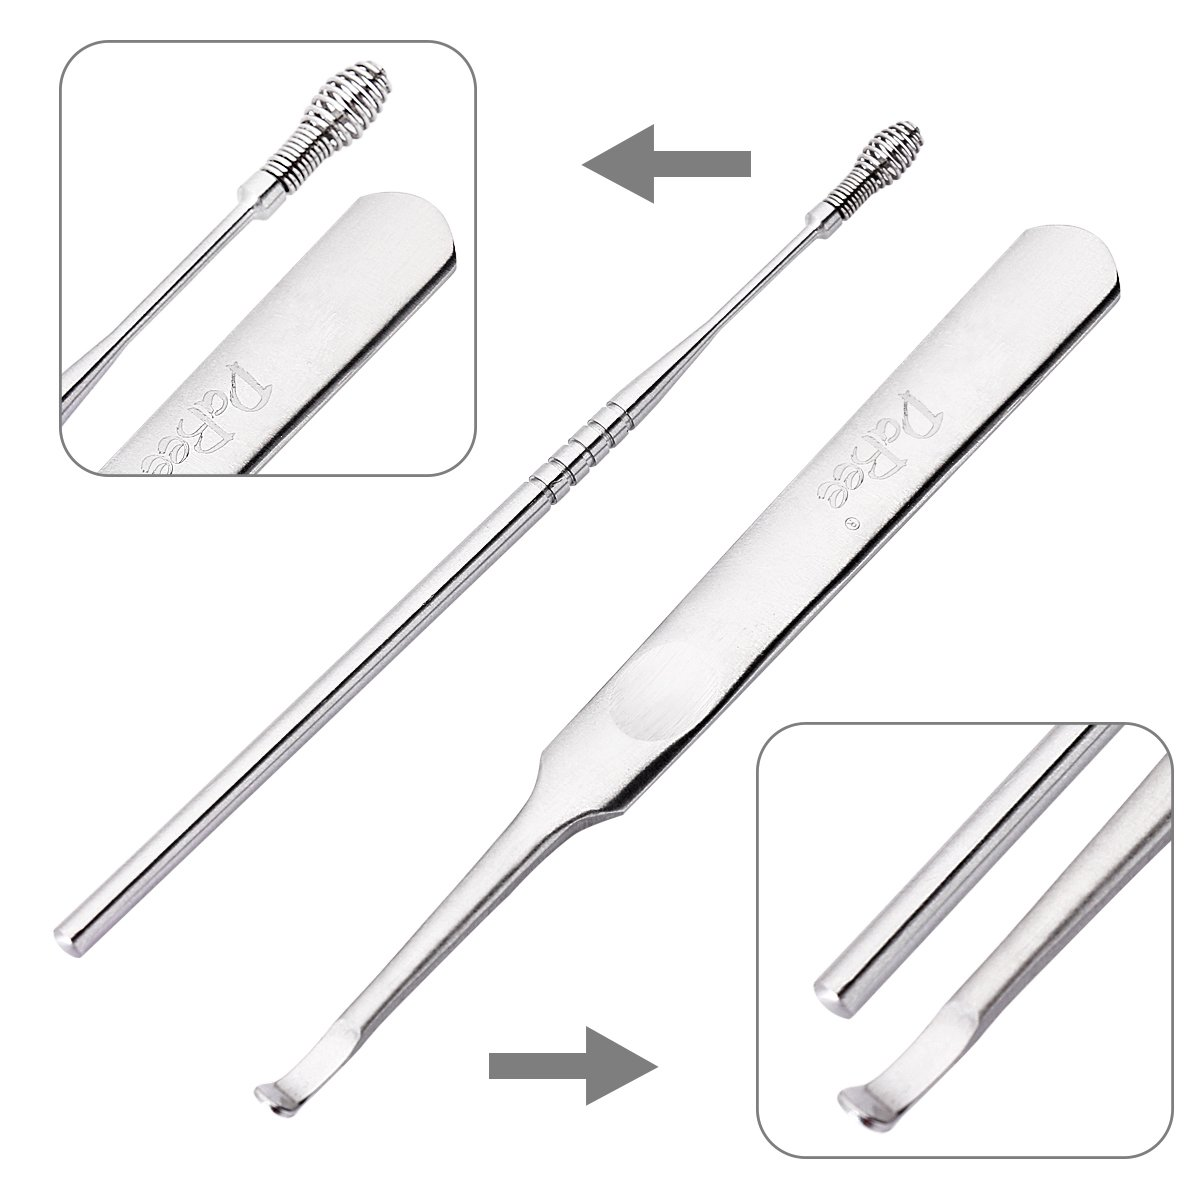 Ear Wax Pick Remover Curette for Build Up Impacted Earwax, Medical Grade Ear hygiene Care Kits, Sturdy & Durable, Surgical Stainless Steel